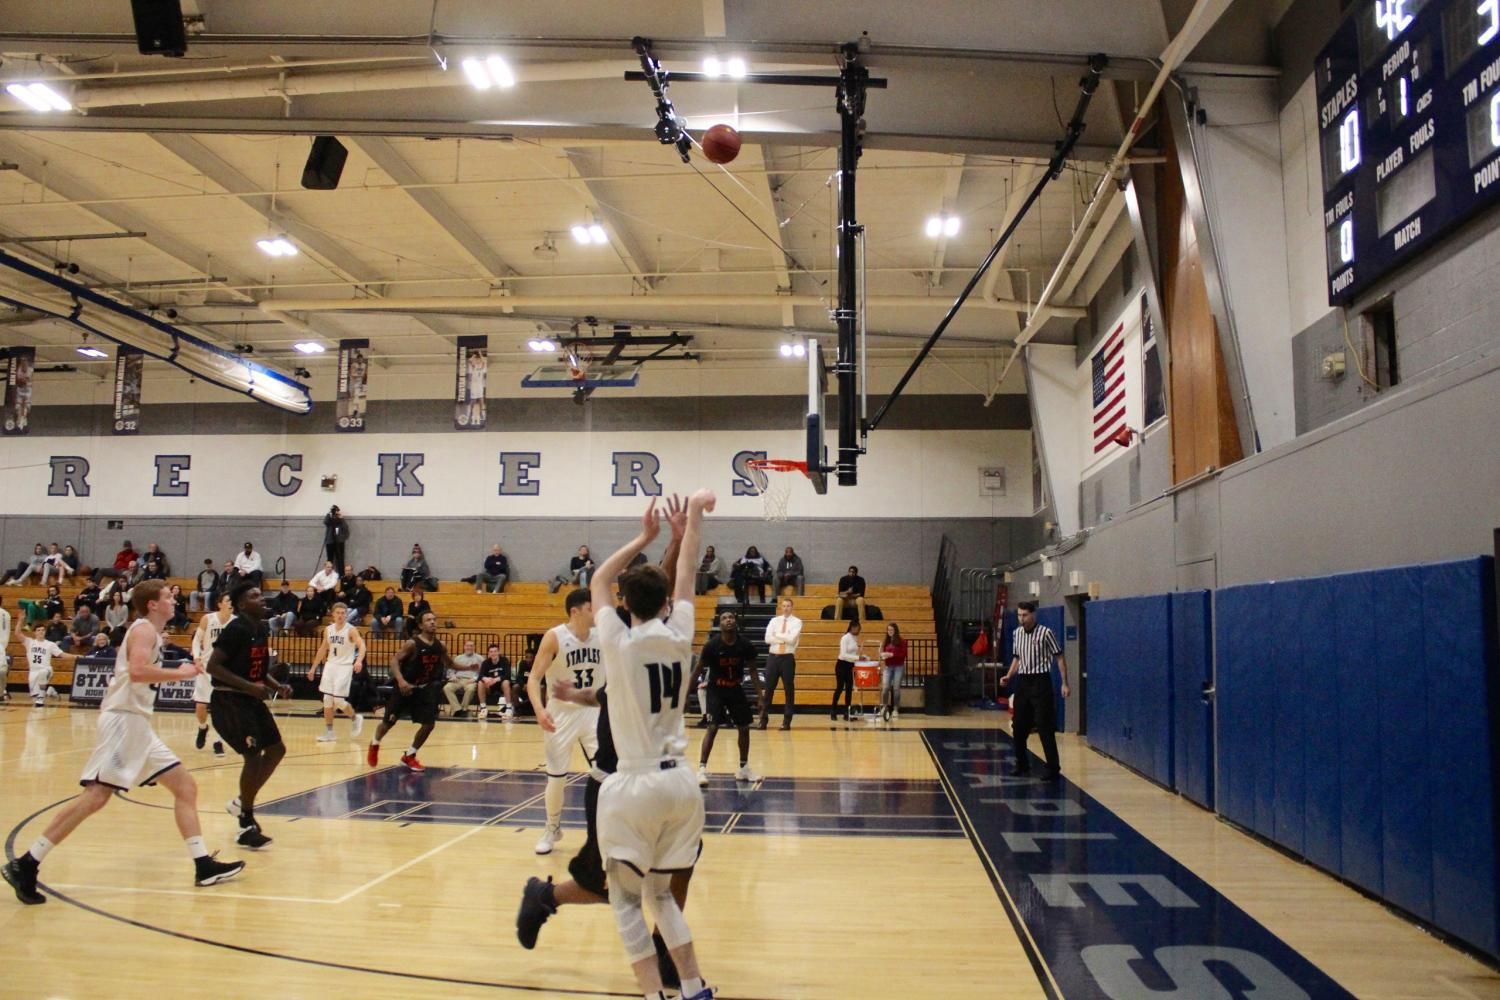 Boys' basketball senior night results in defeat against Stamford